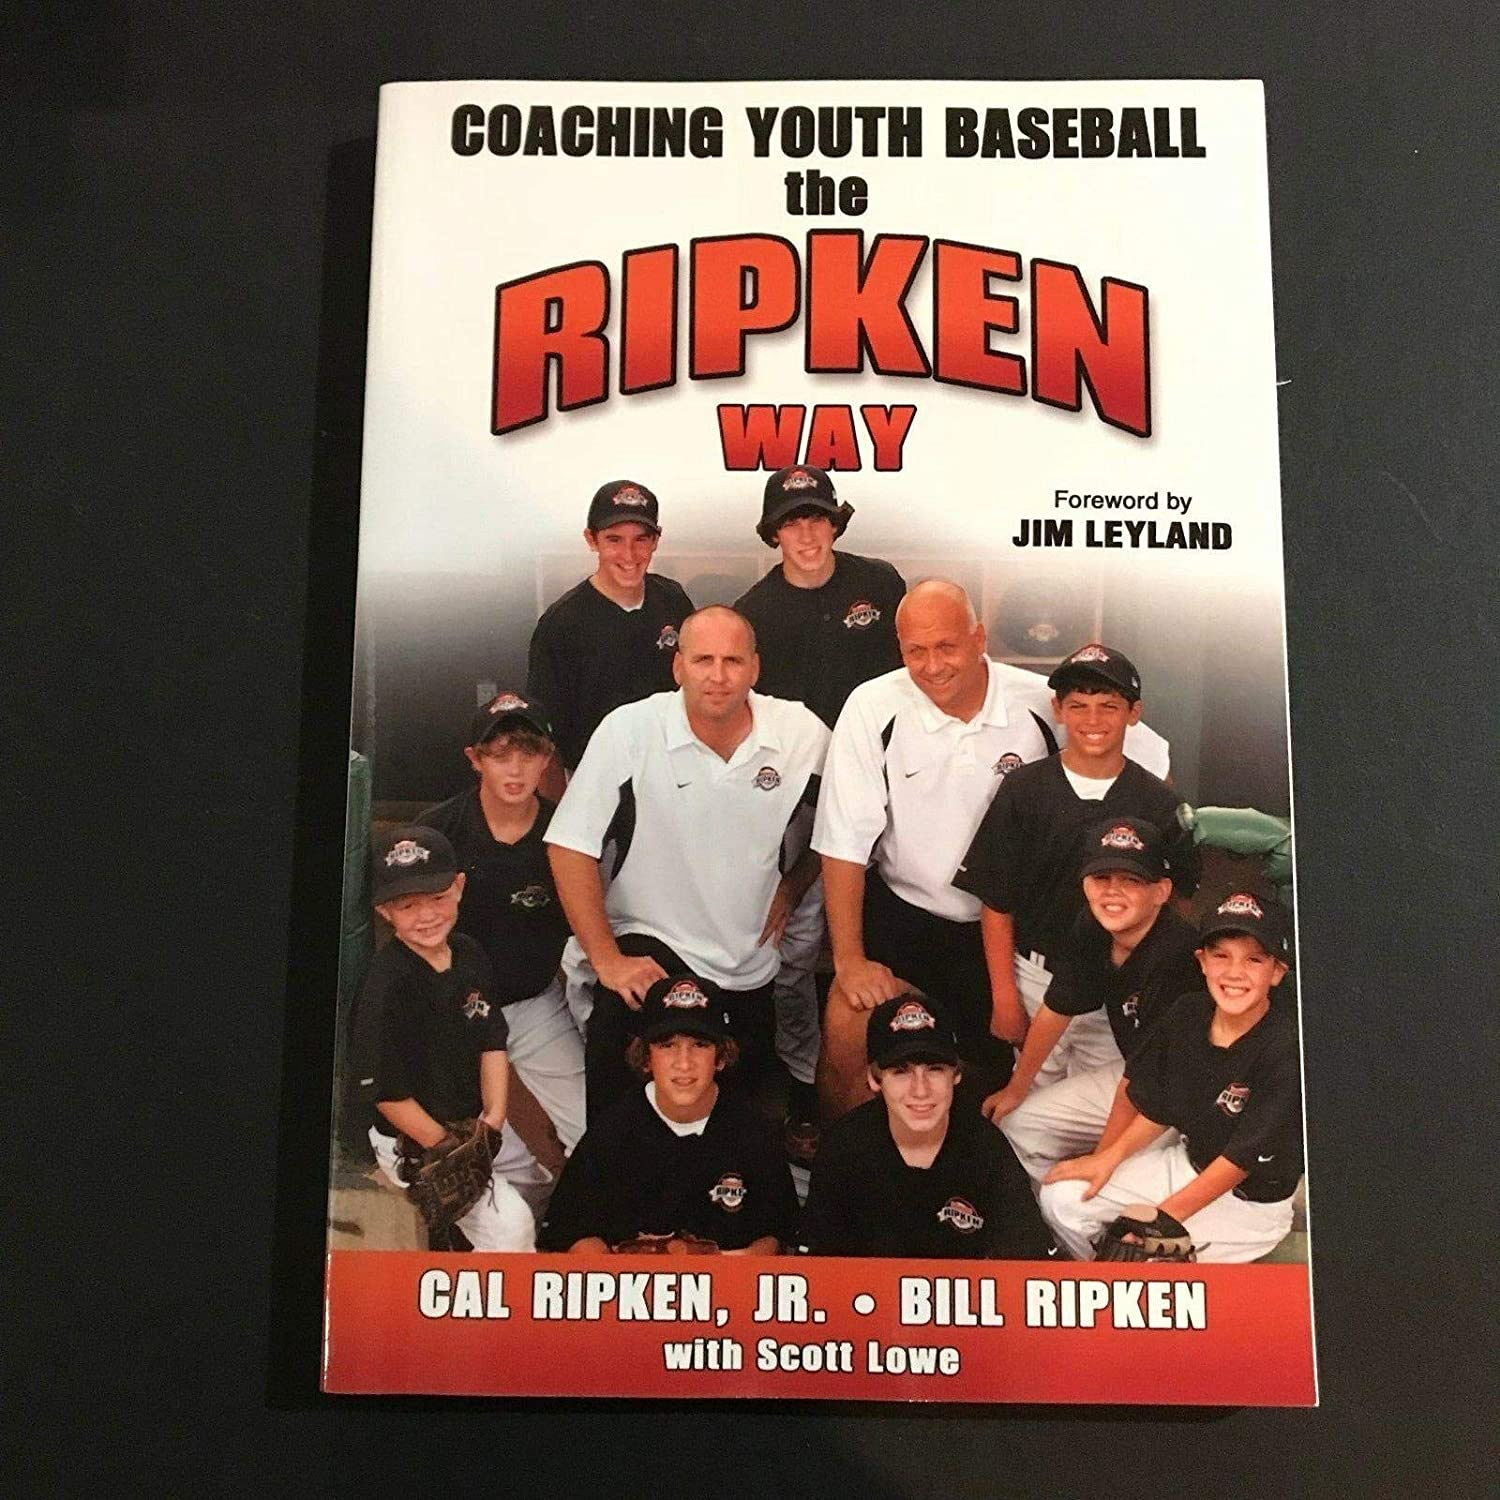 Cal Ripken Signed Book Auto Ripken Way Coaching Youth Baseball H/C Orioles - JSA Certified - MLB Autographed Miscellaneous Items